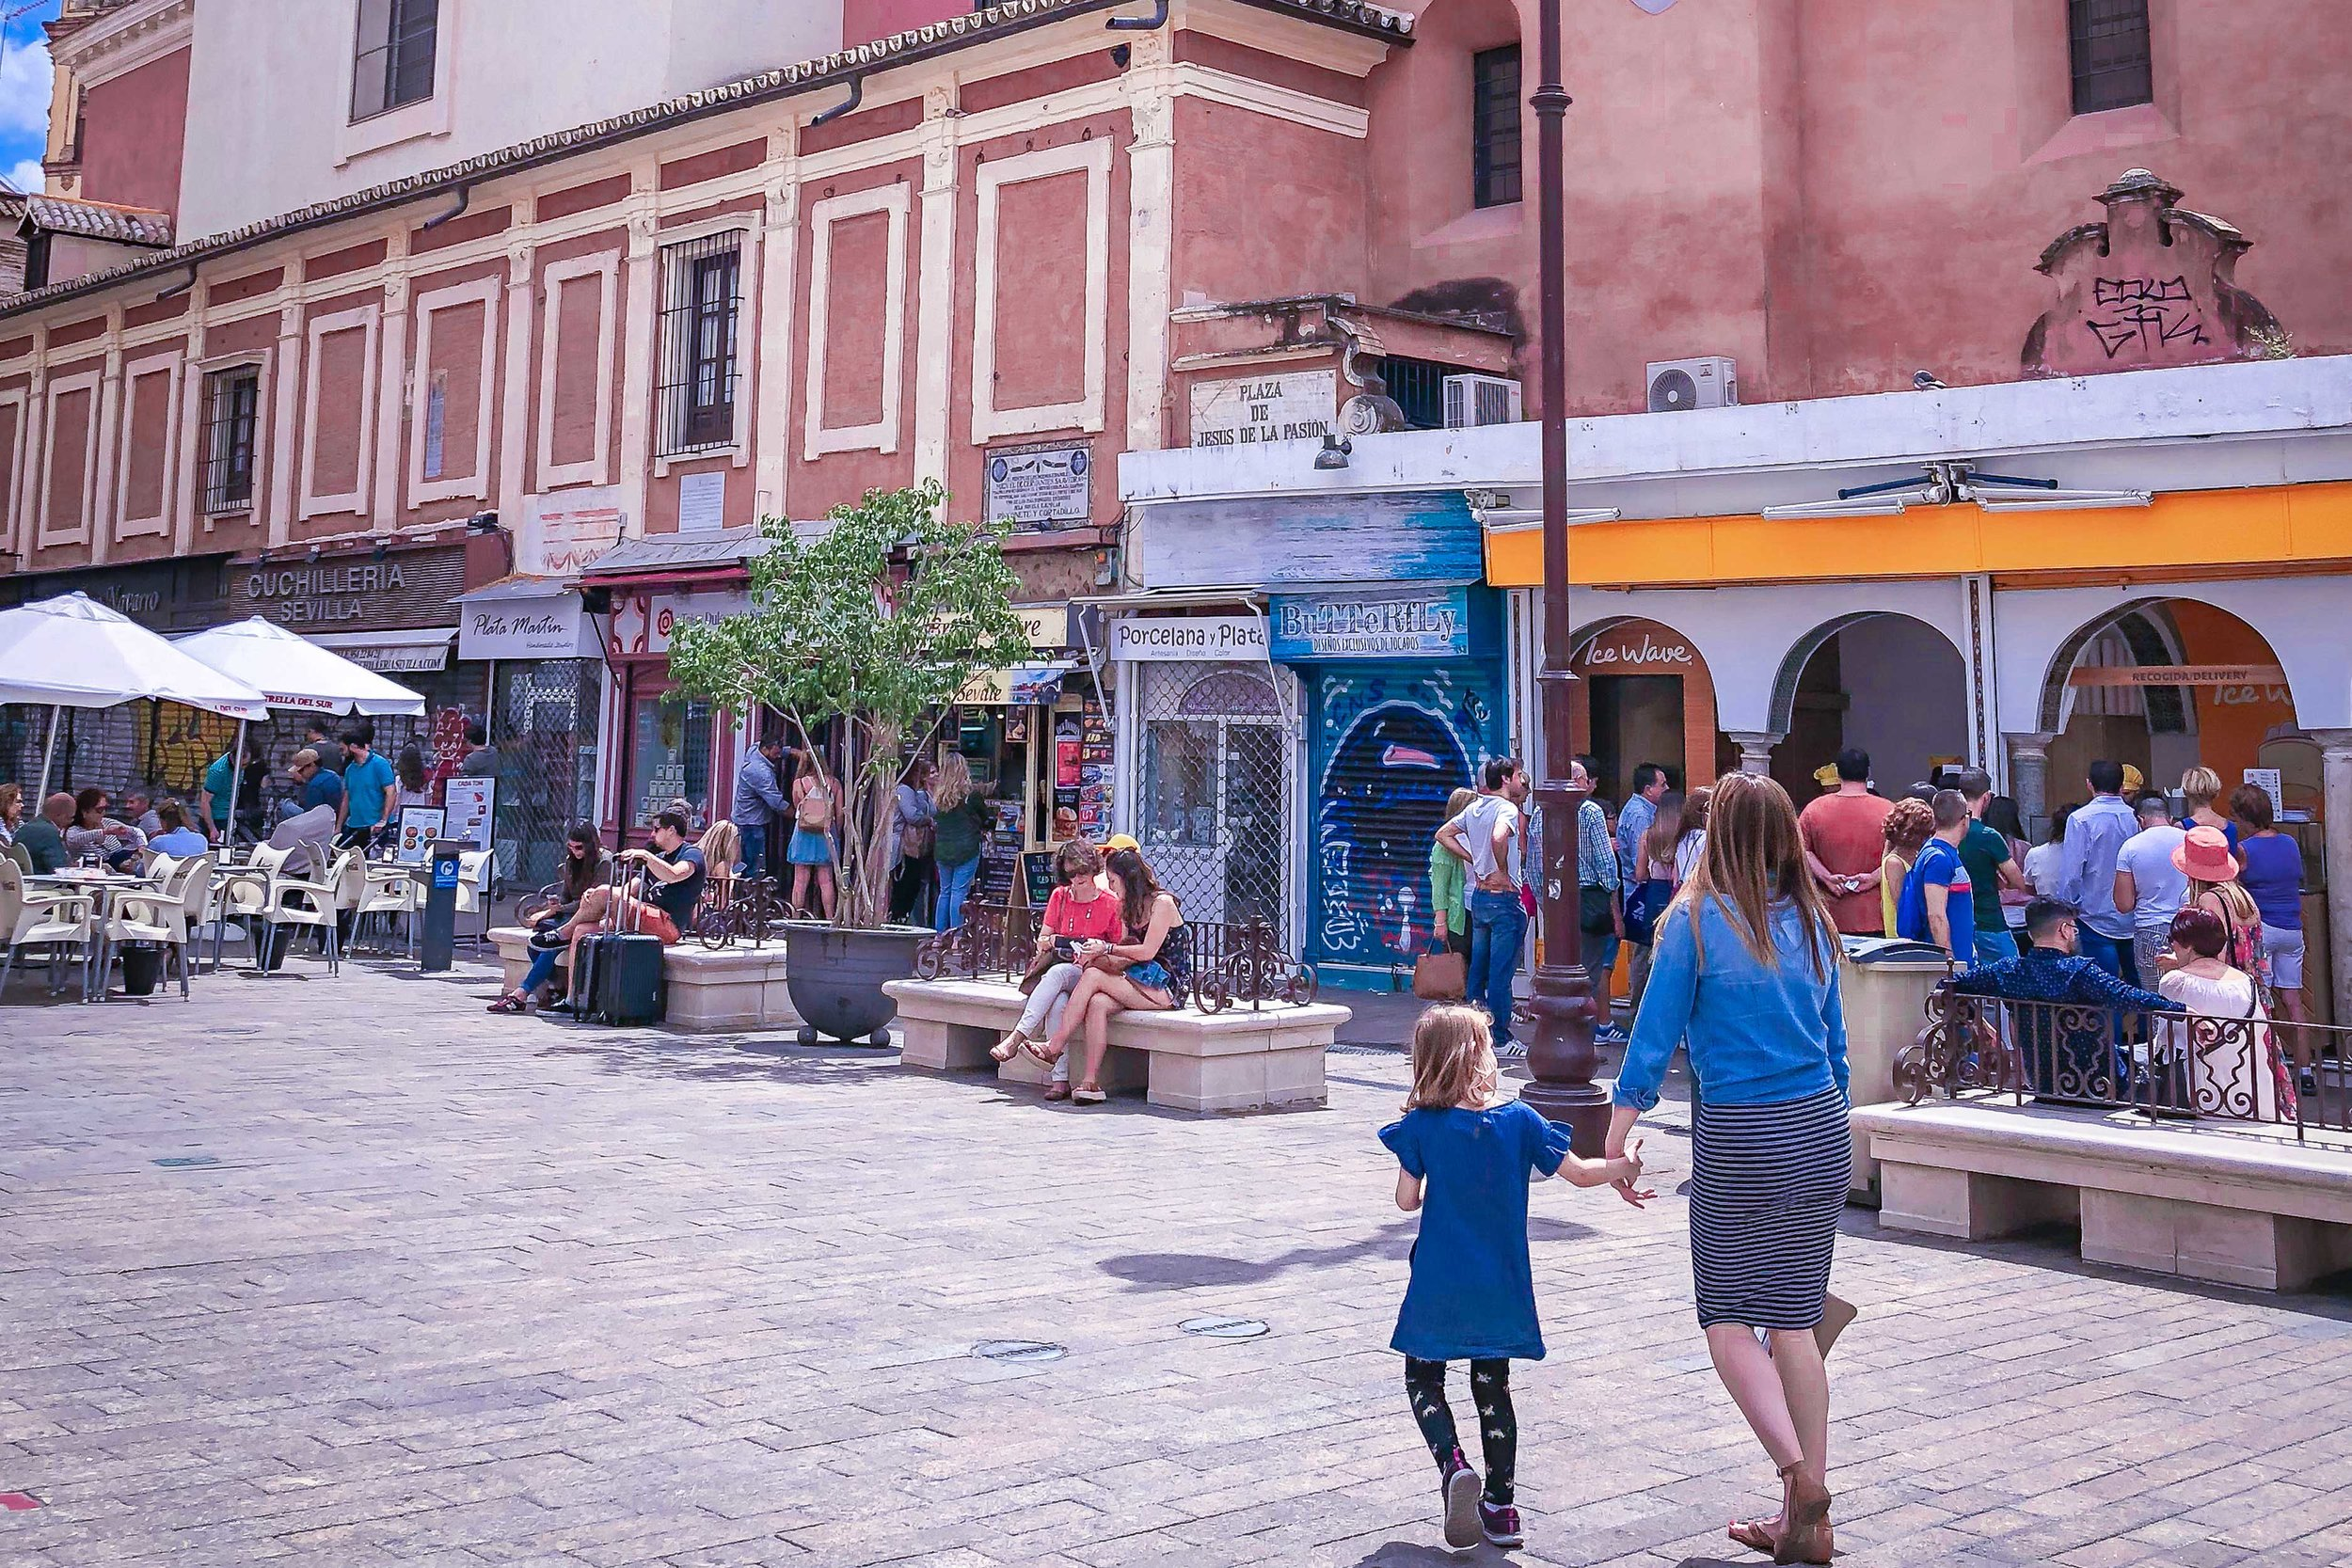 5-things-to-do-with-kids-in-seville-spain-off-the-beaten-path-post.jpg